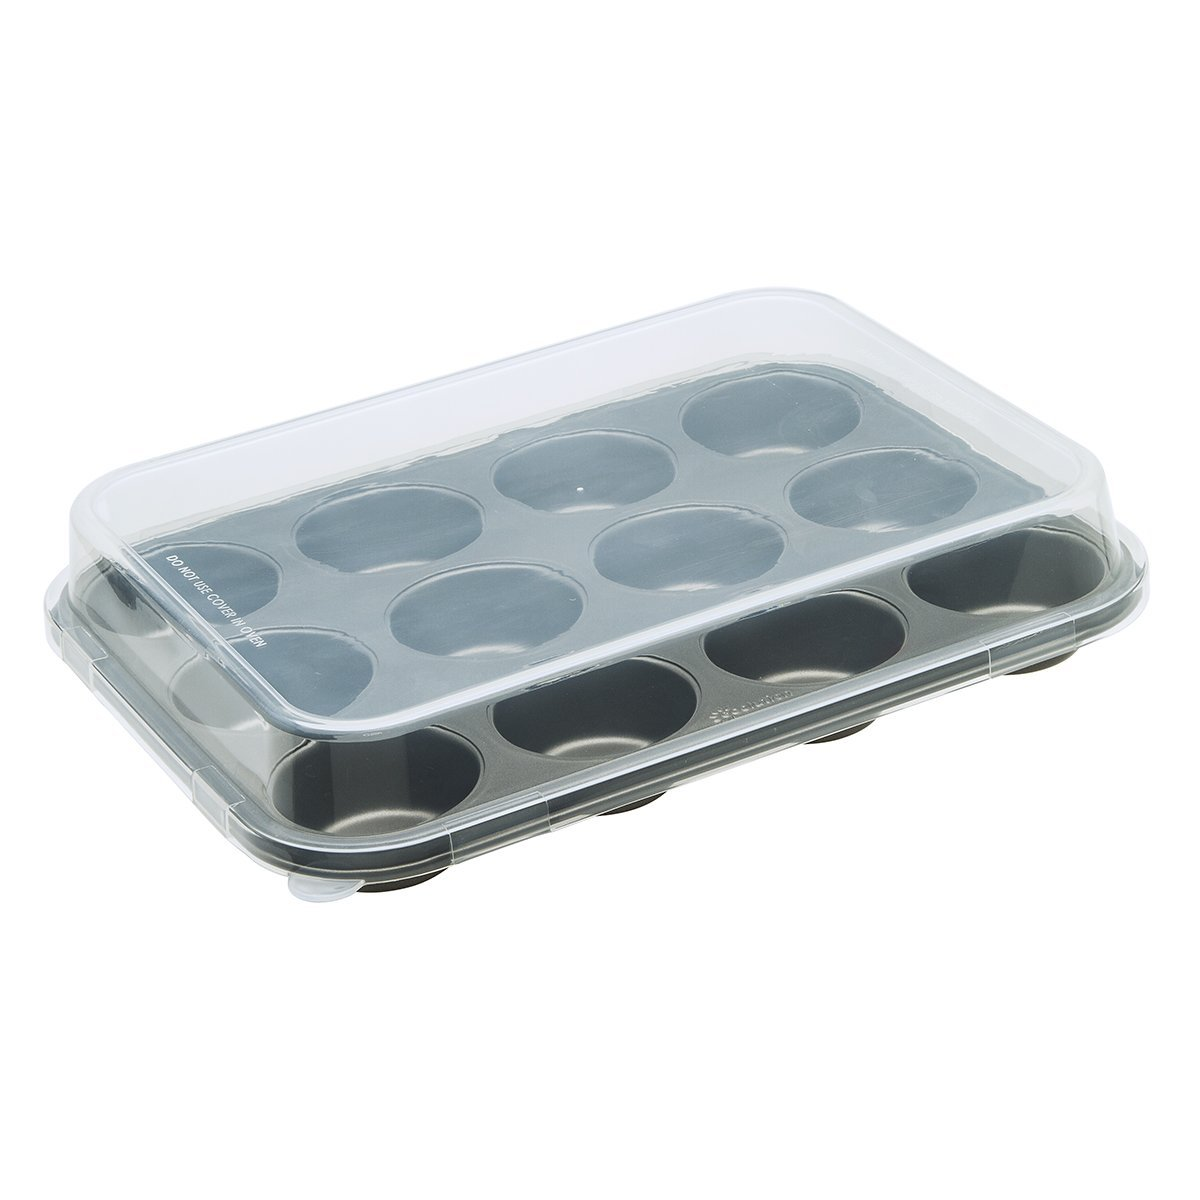 "Ecolution Bakeins 12 Cup Muffin and Cupcake Pan with Lid – PFOA, BPA, and PTFE Free Non-Stick Coating – Heavy Duty Carbon Steel – Dishwasher Safe – Gray – 13.75"" x 10.5"" x 1.125"" (Without Lid)"